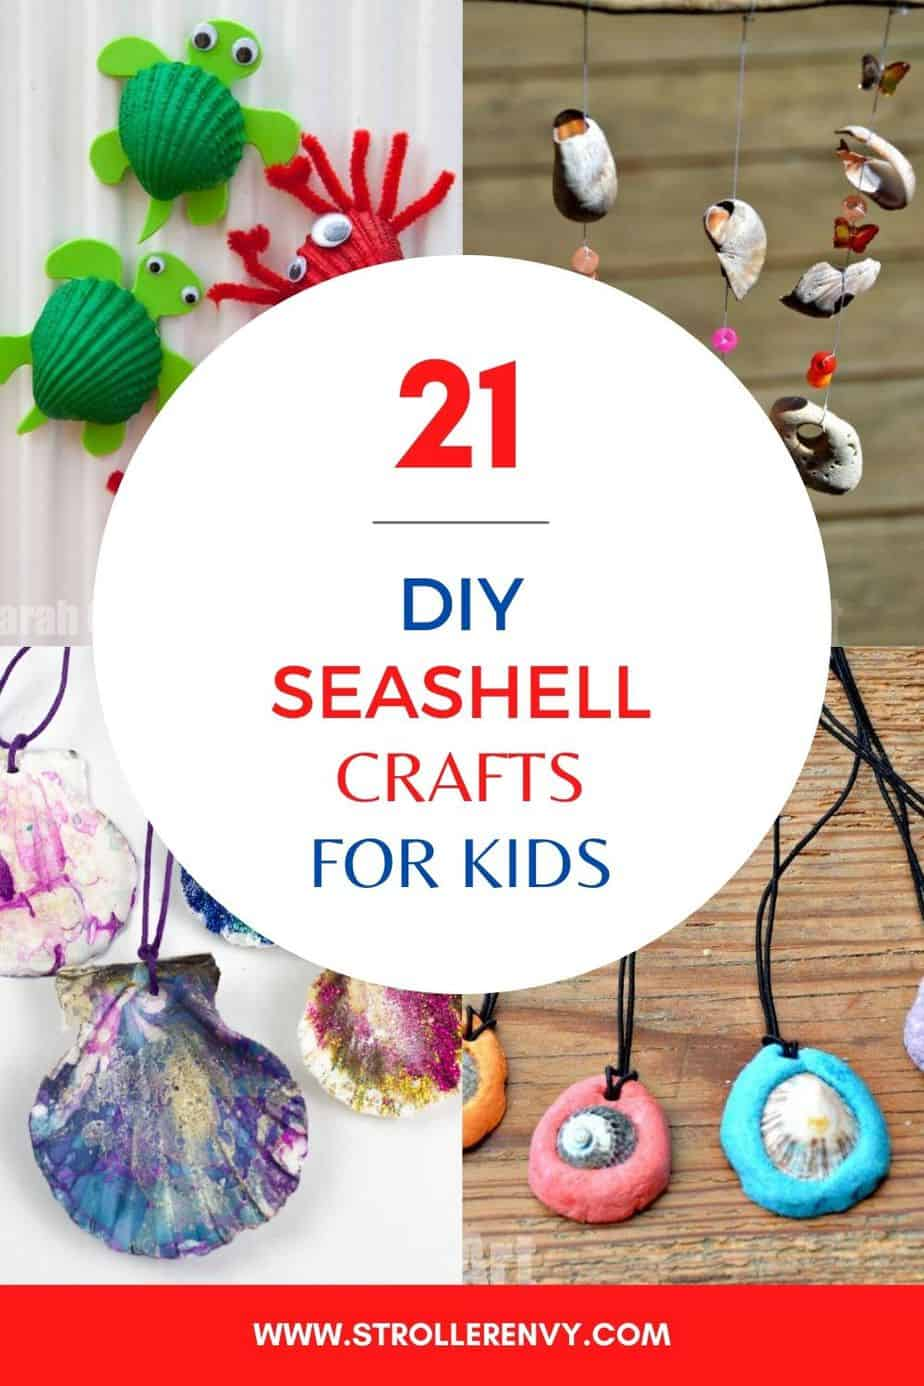 diy seashell crafts for kids pin image with text overlay